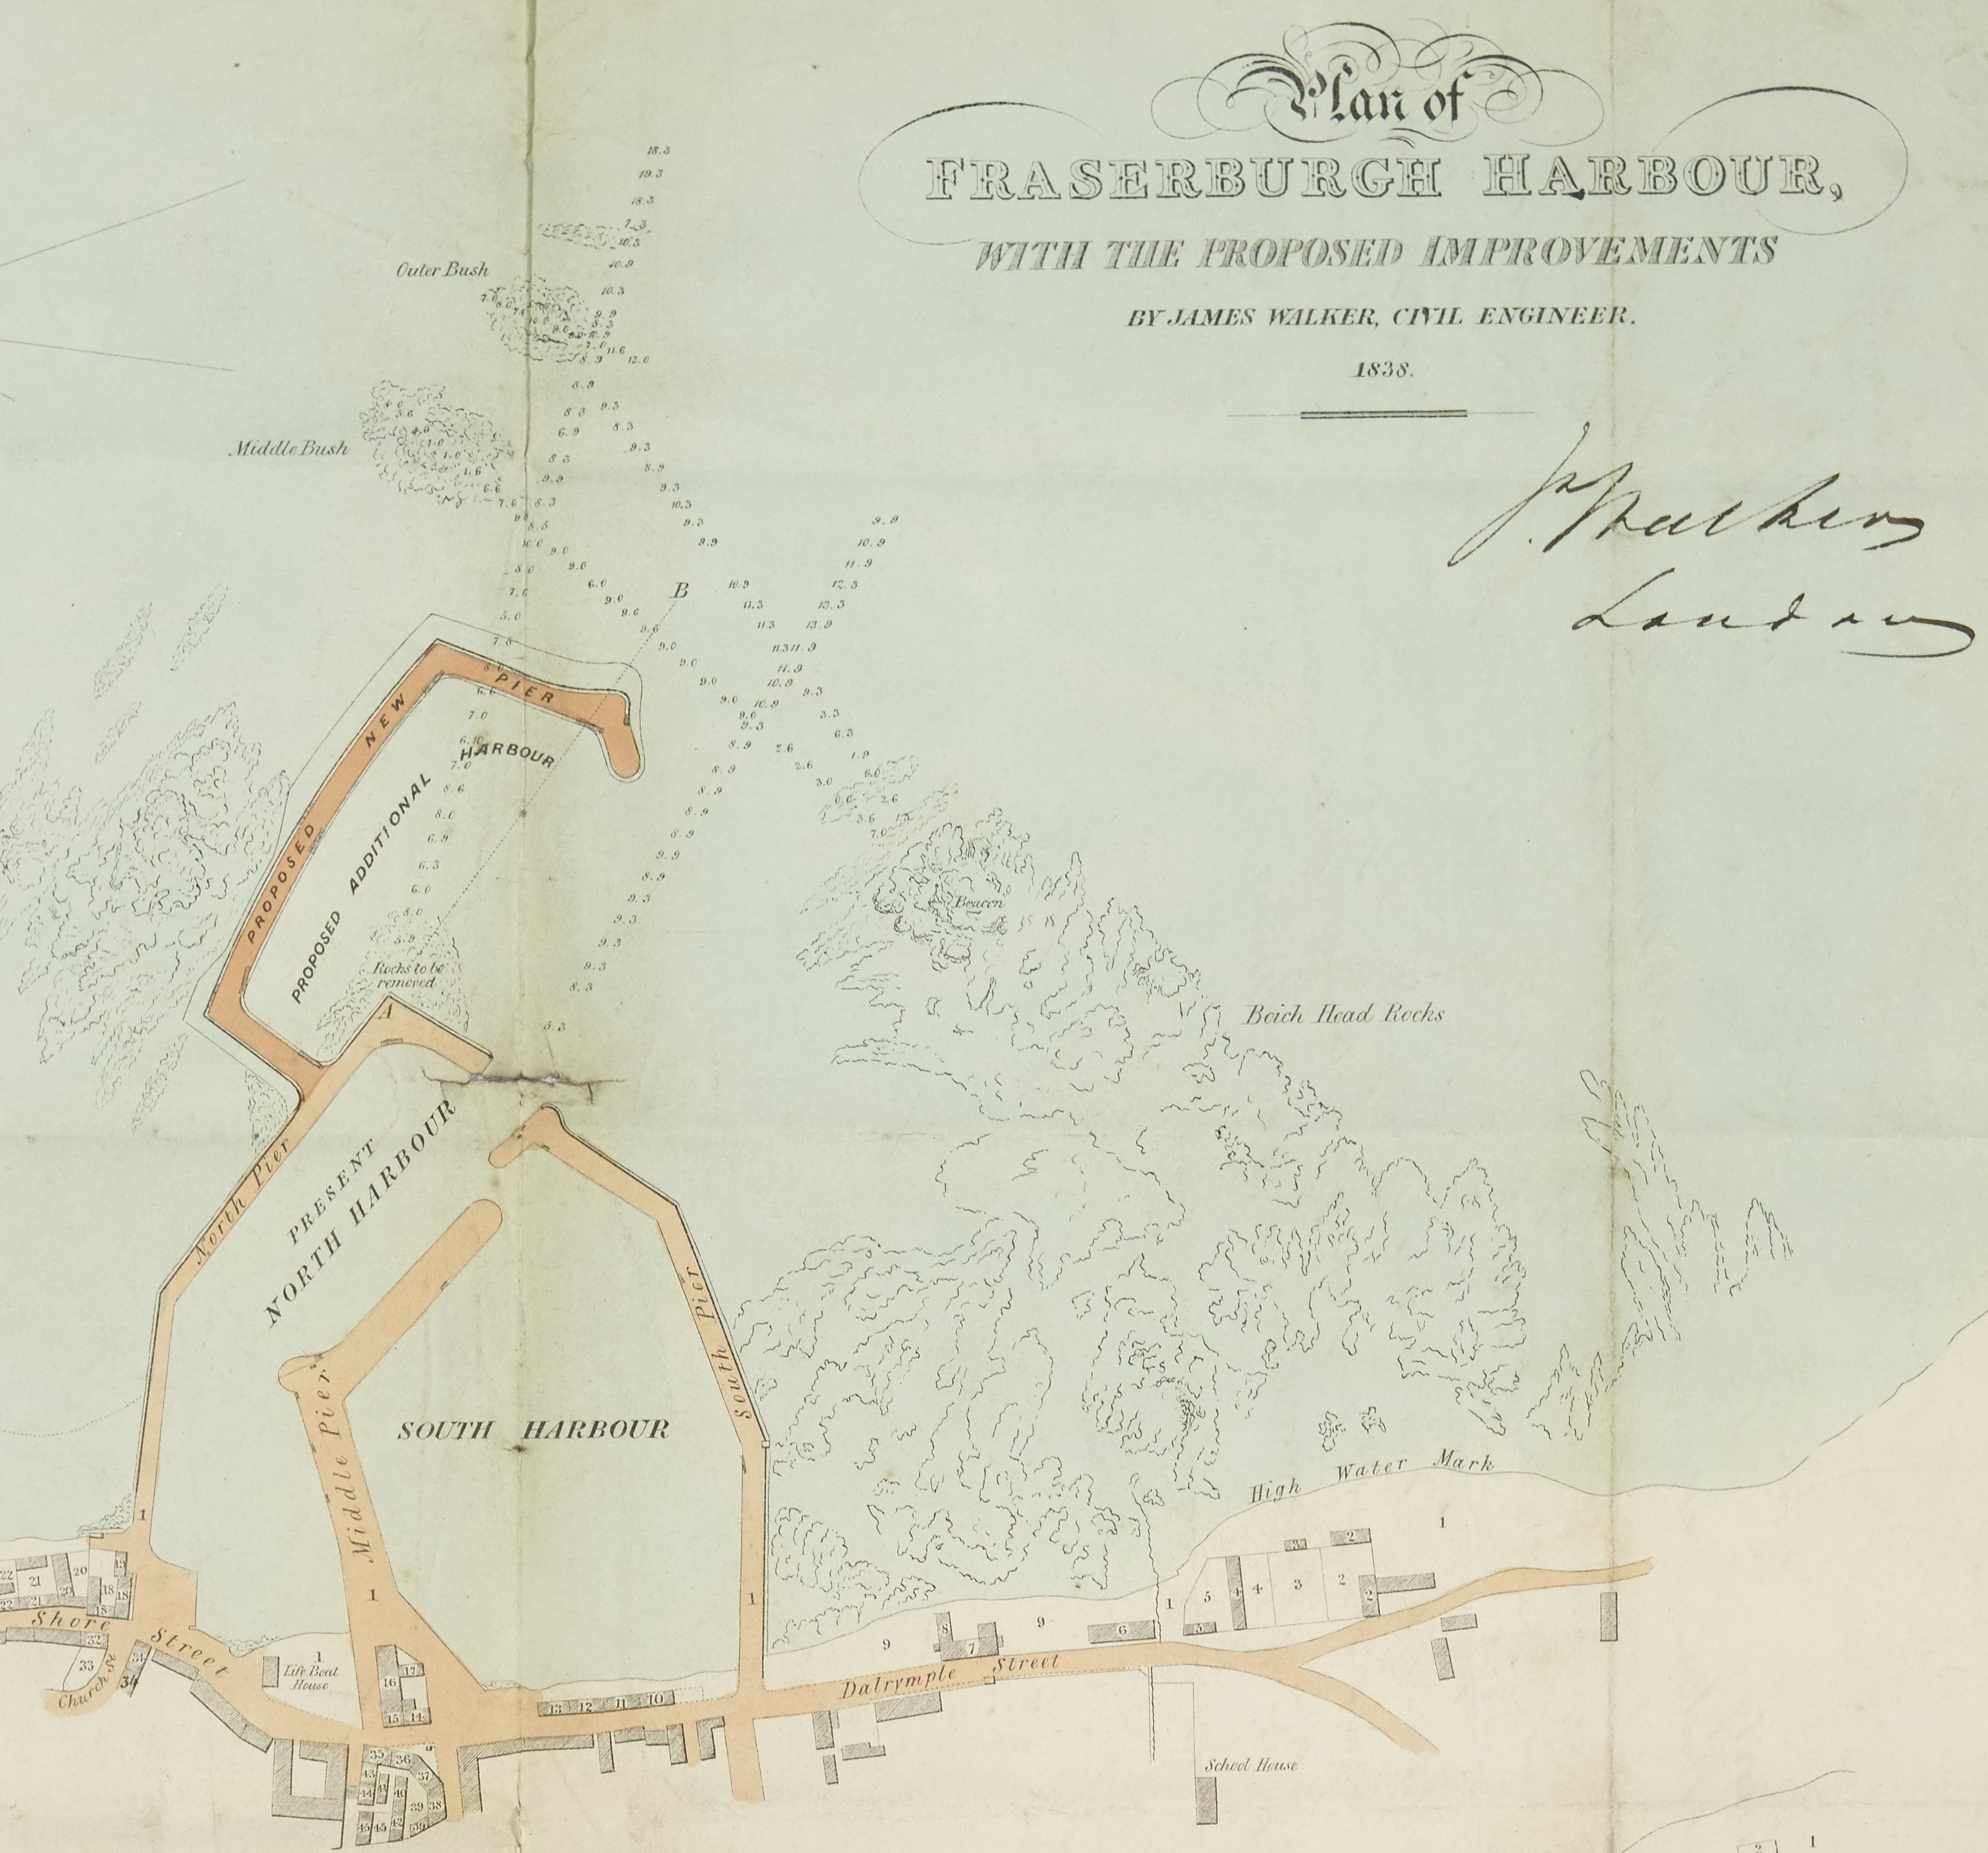 Detail of a plan of Fraserburgh Harbour showing proposed improvements